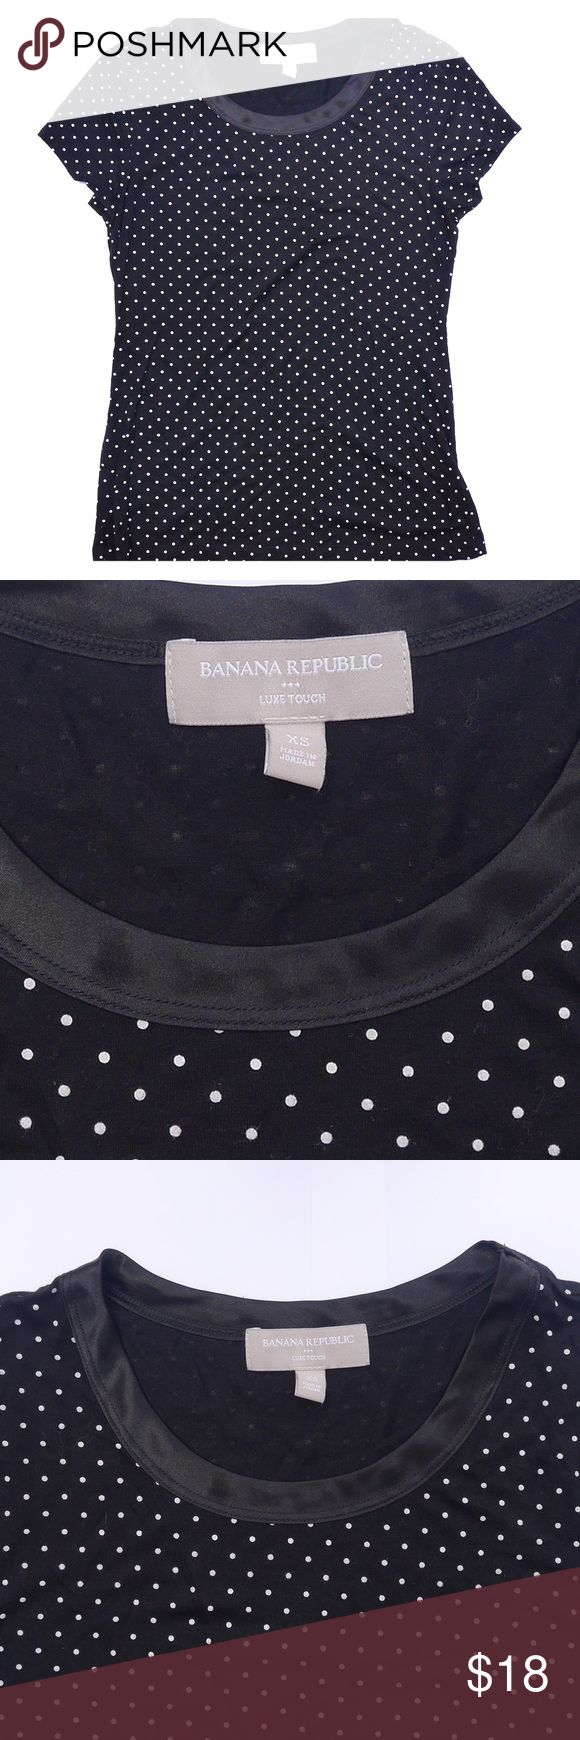 BANANA REPUBLIC - Polka Dot T-Shirt NWOT - Super soft great quality fabric. Has some stretch and is super cute. Banana Republic Tops Tees - Short Sleeve